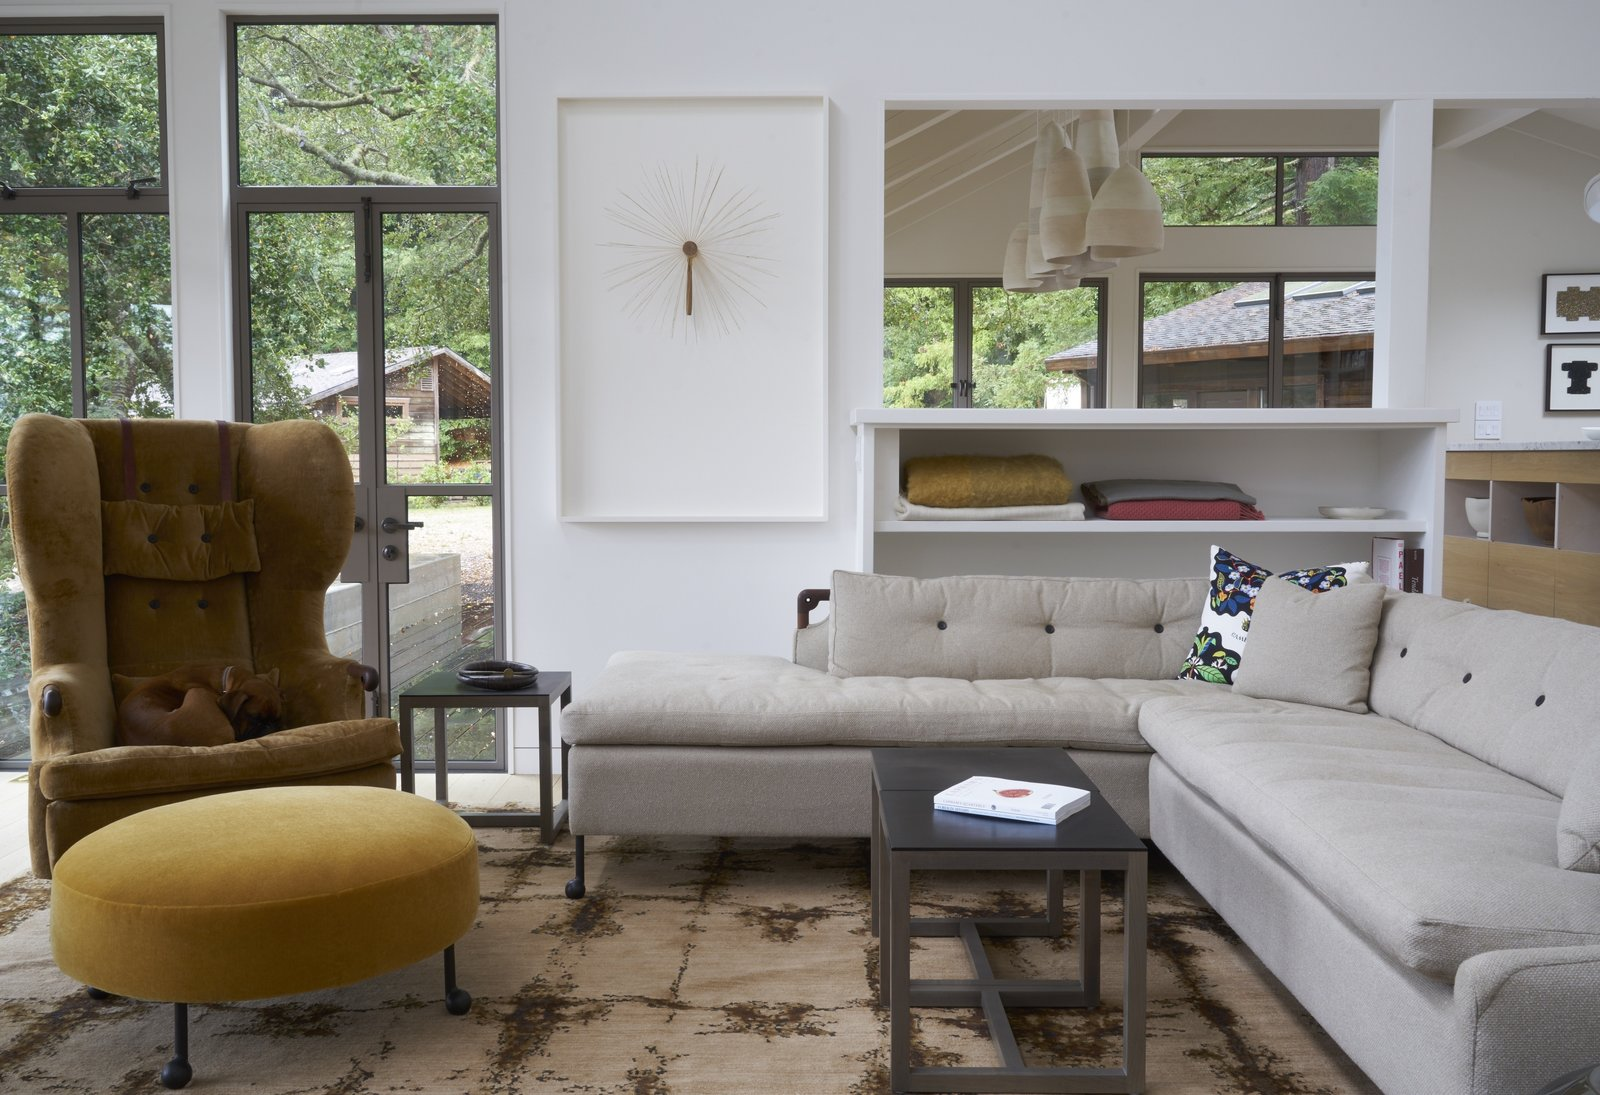 The living room features furniture from BDDW. Much of art arrayed throughout the home was collected through auctions; Southern Exposure and The Luggage Gallery are two favorite sources.   Beetlebung